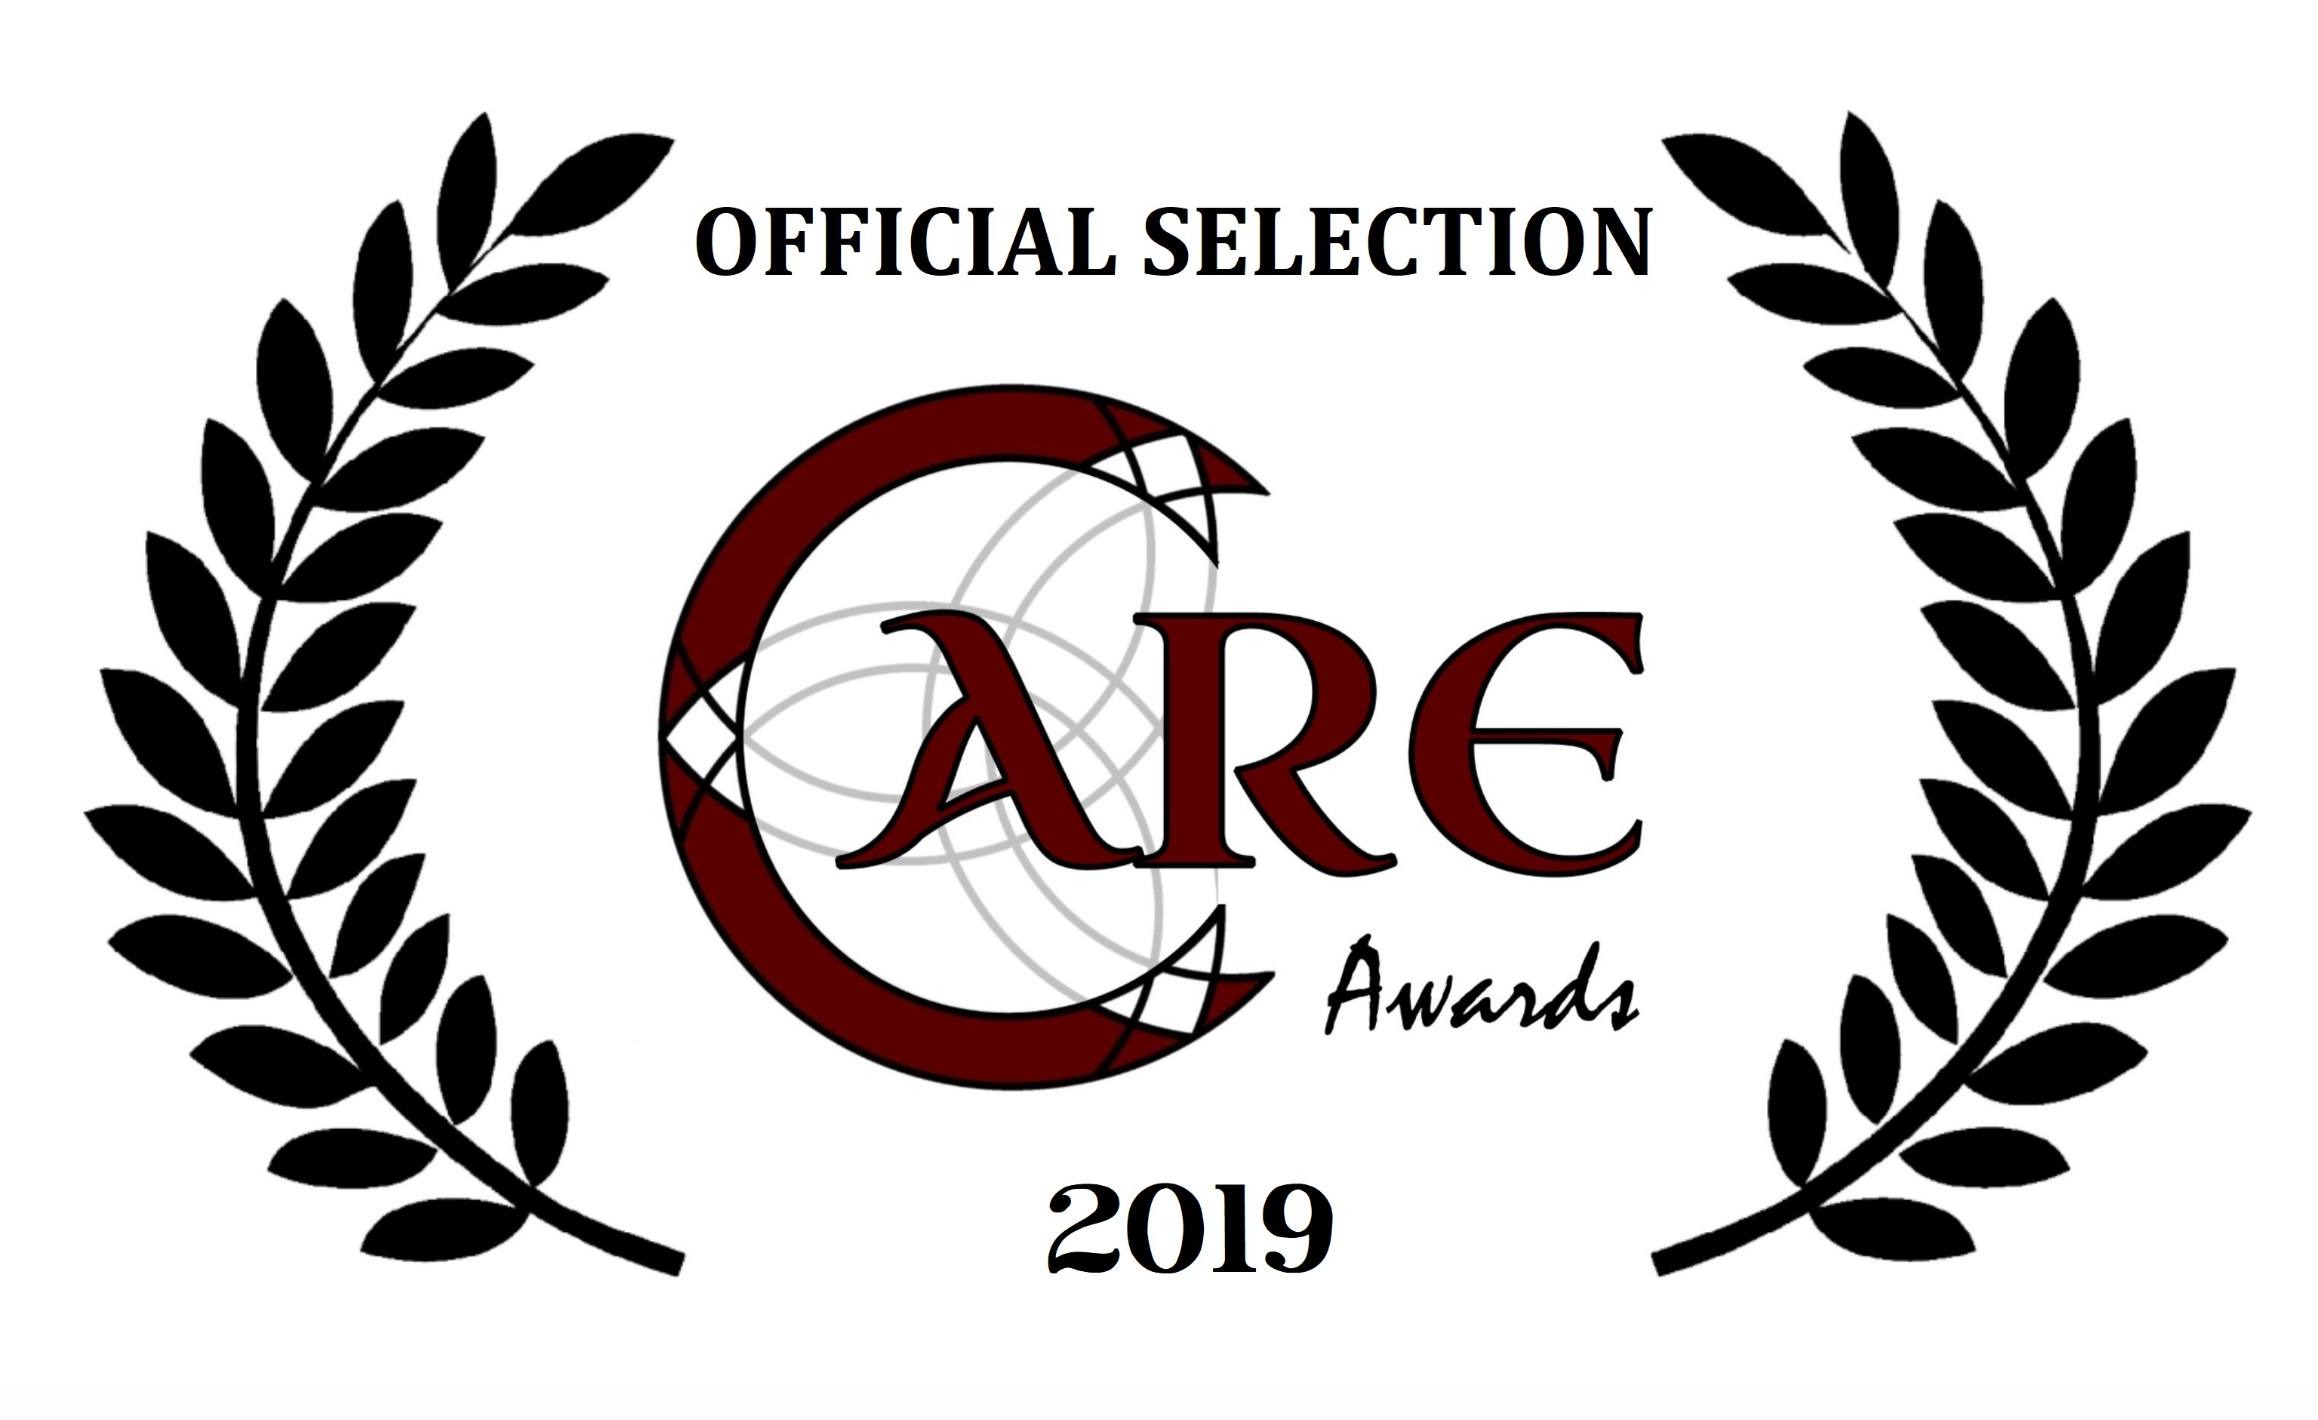 Official Selection CARE Awards